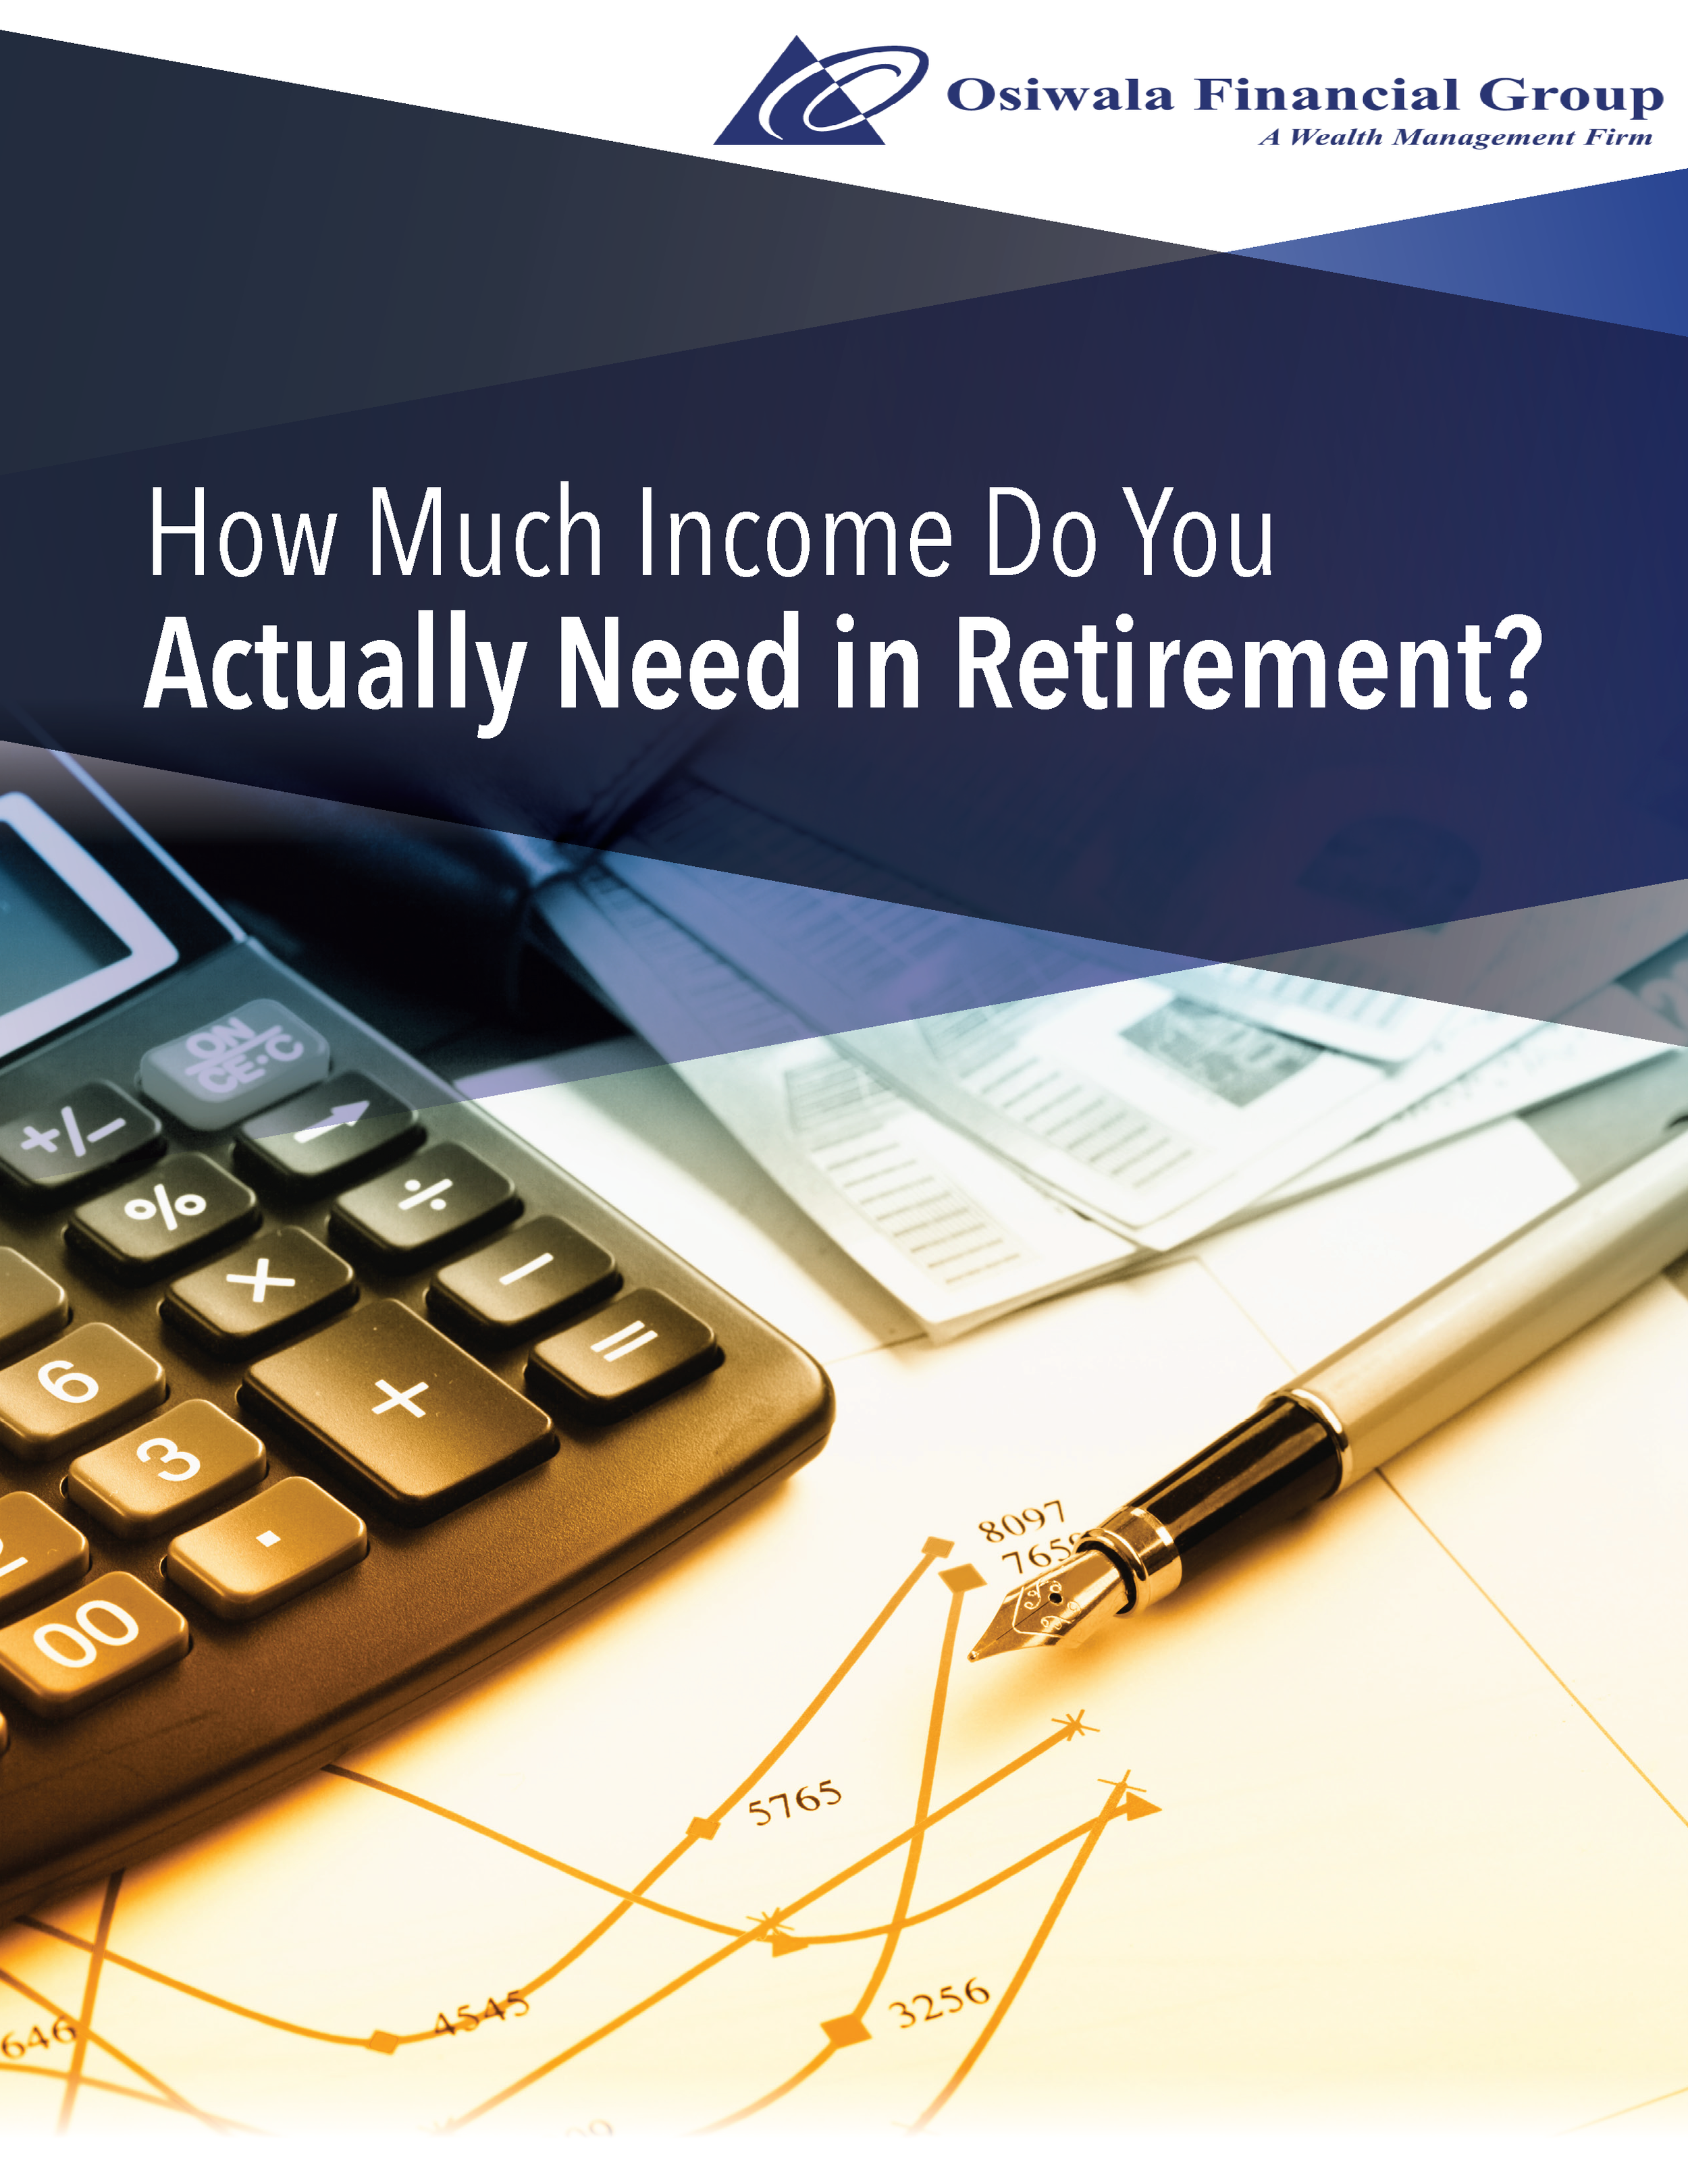 How Much Income Do You Actually Need in Retirement